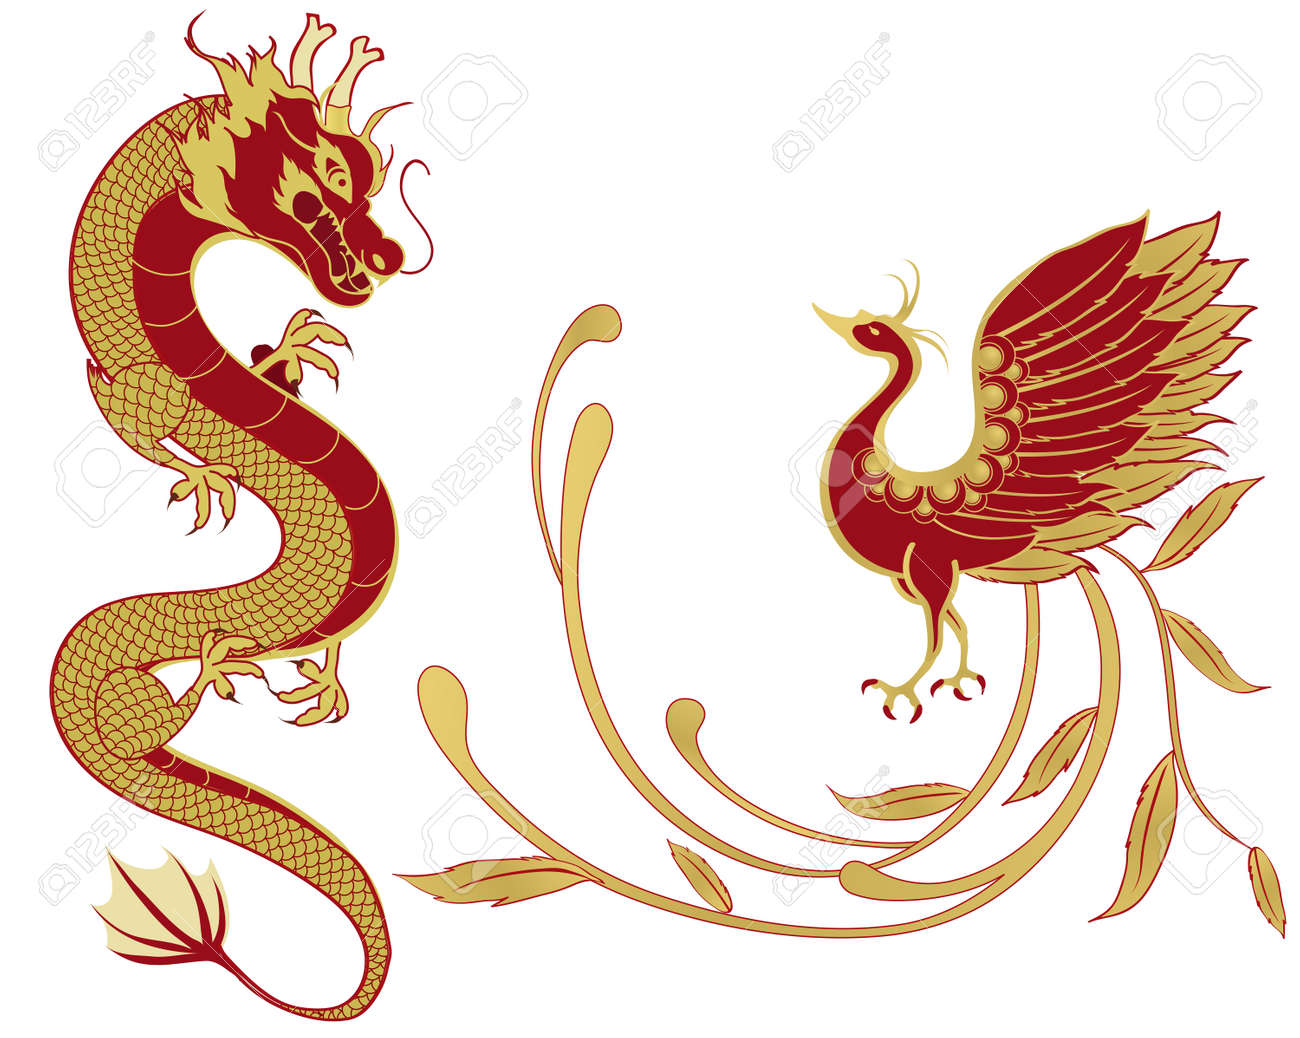 Dragon and phoenix for symbolism in traditional chinese wedding dragon and phoenix for symbolism in traditional chinese wedding and marriages isolated version stock vector buycottarizona Choice Image